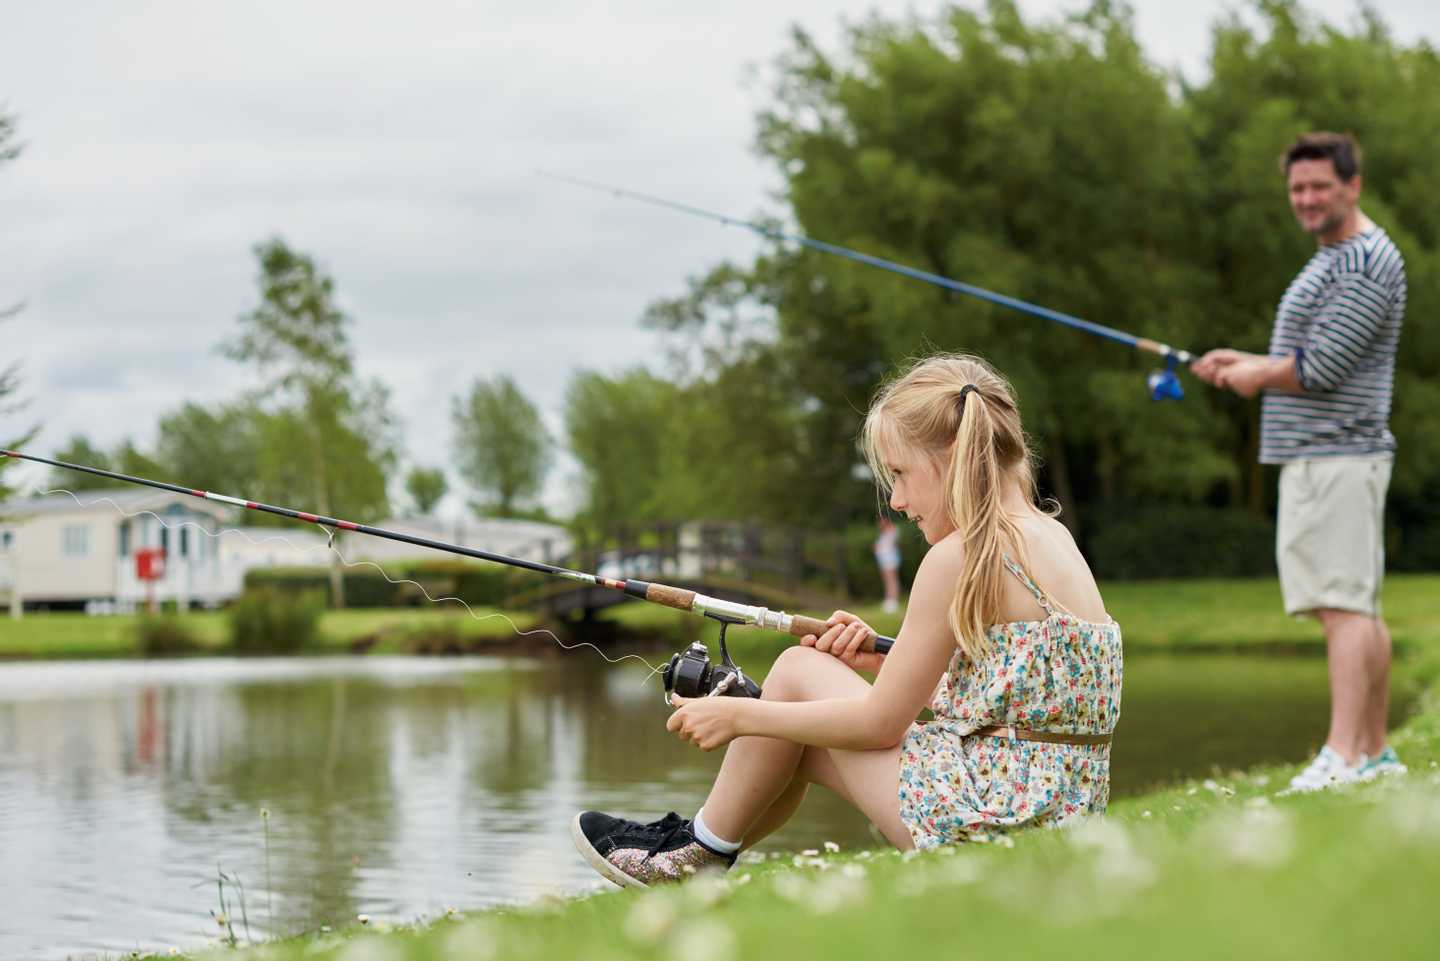 A father and daughter fishing on the bank of the coarse fishing lake